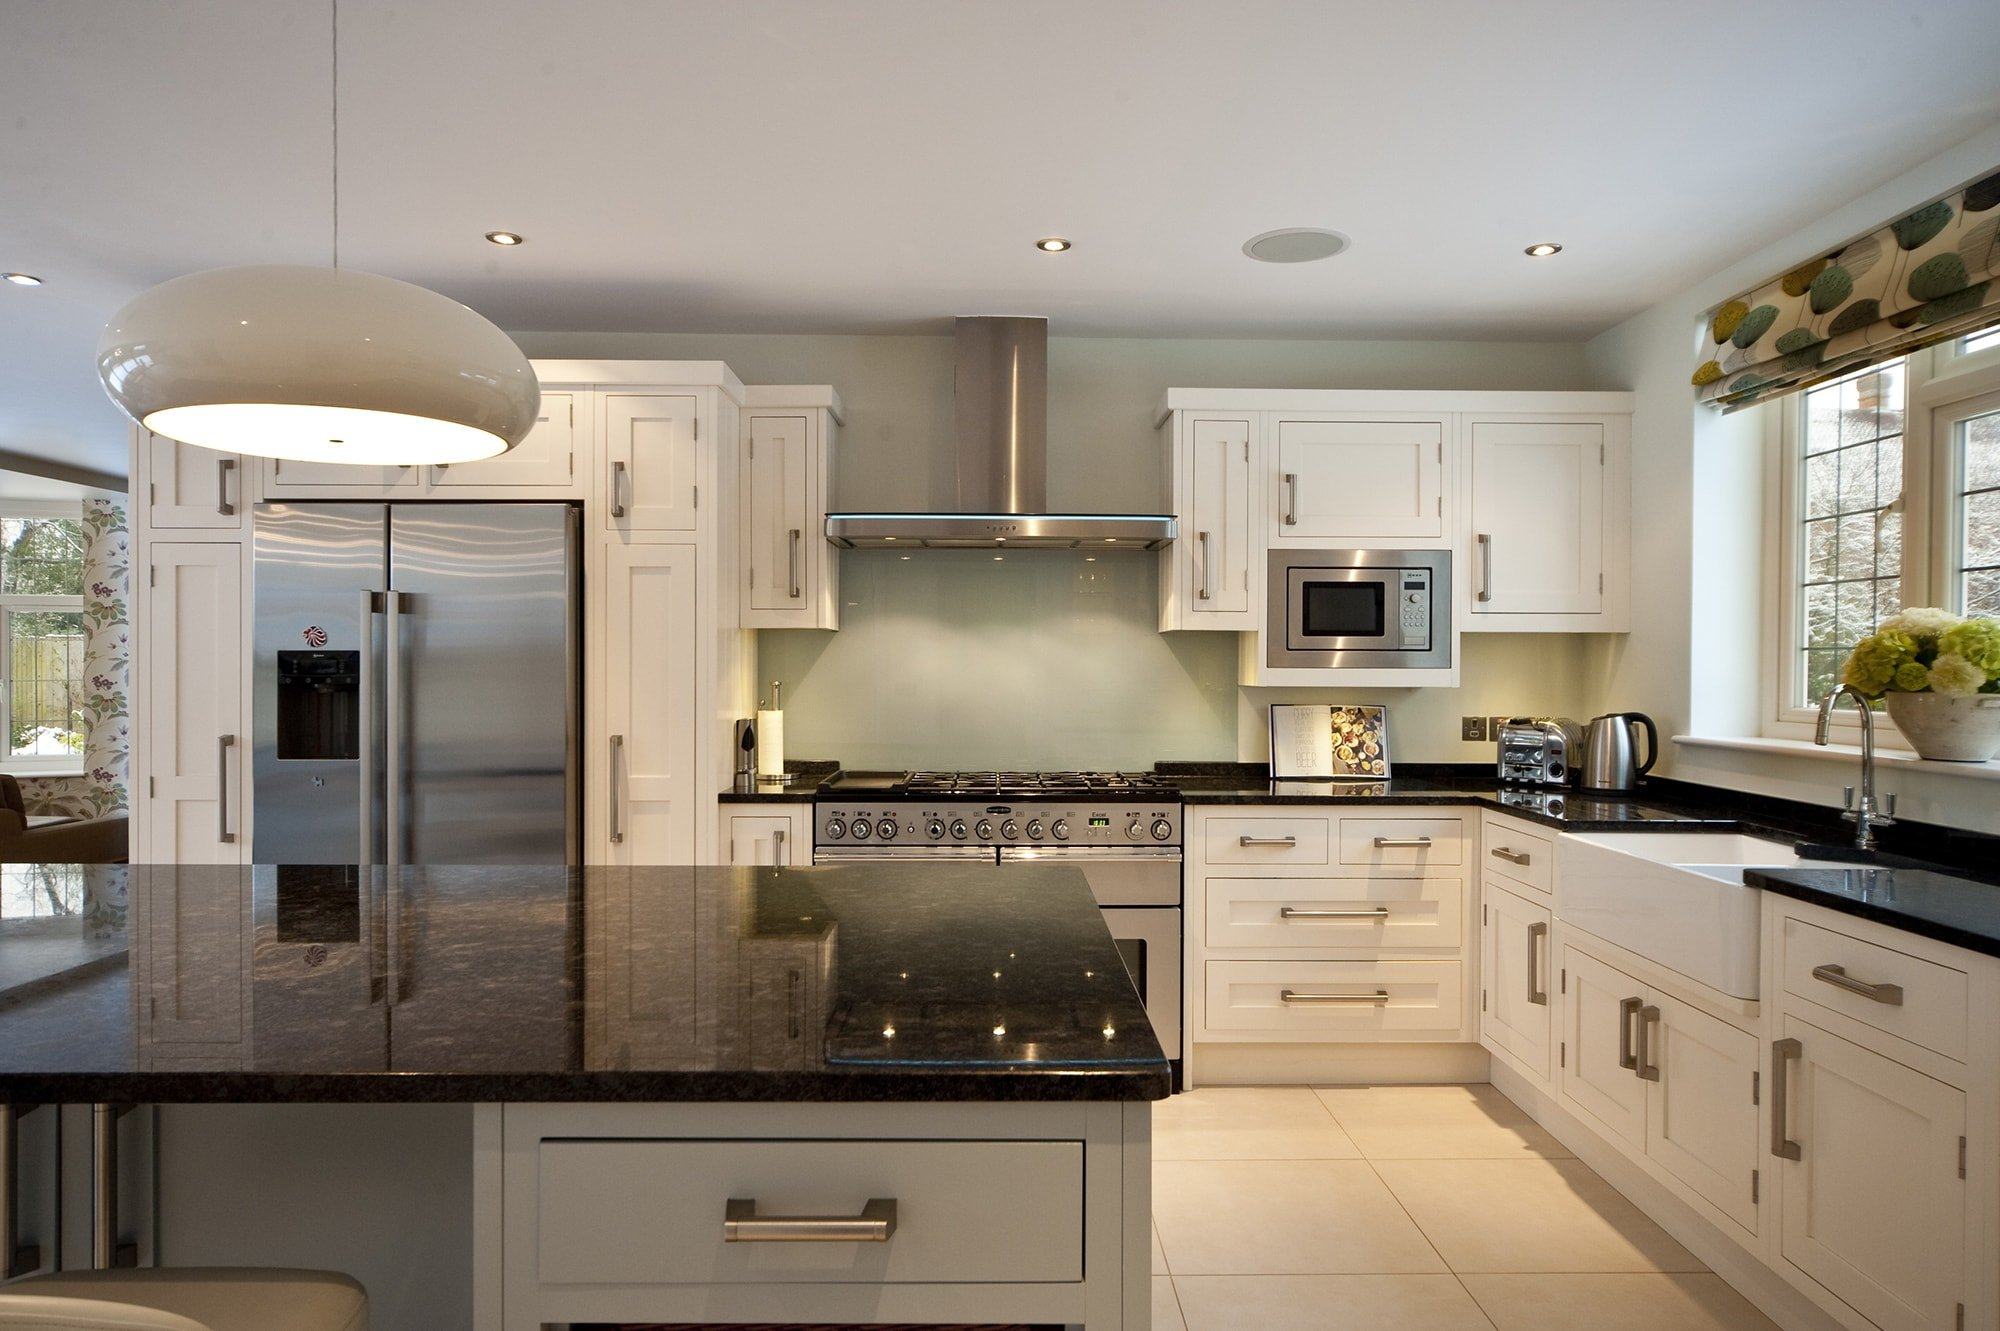 Granite worktop fitters surrey granite kitchen work tops for Kitchen units and worktops